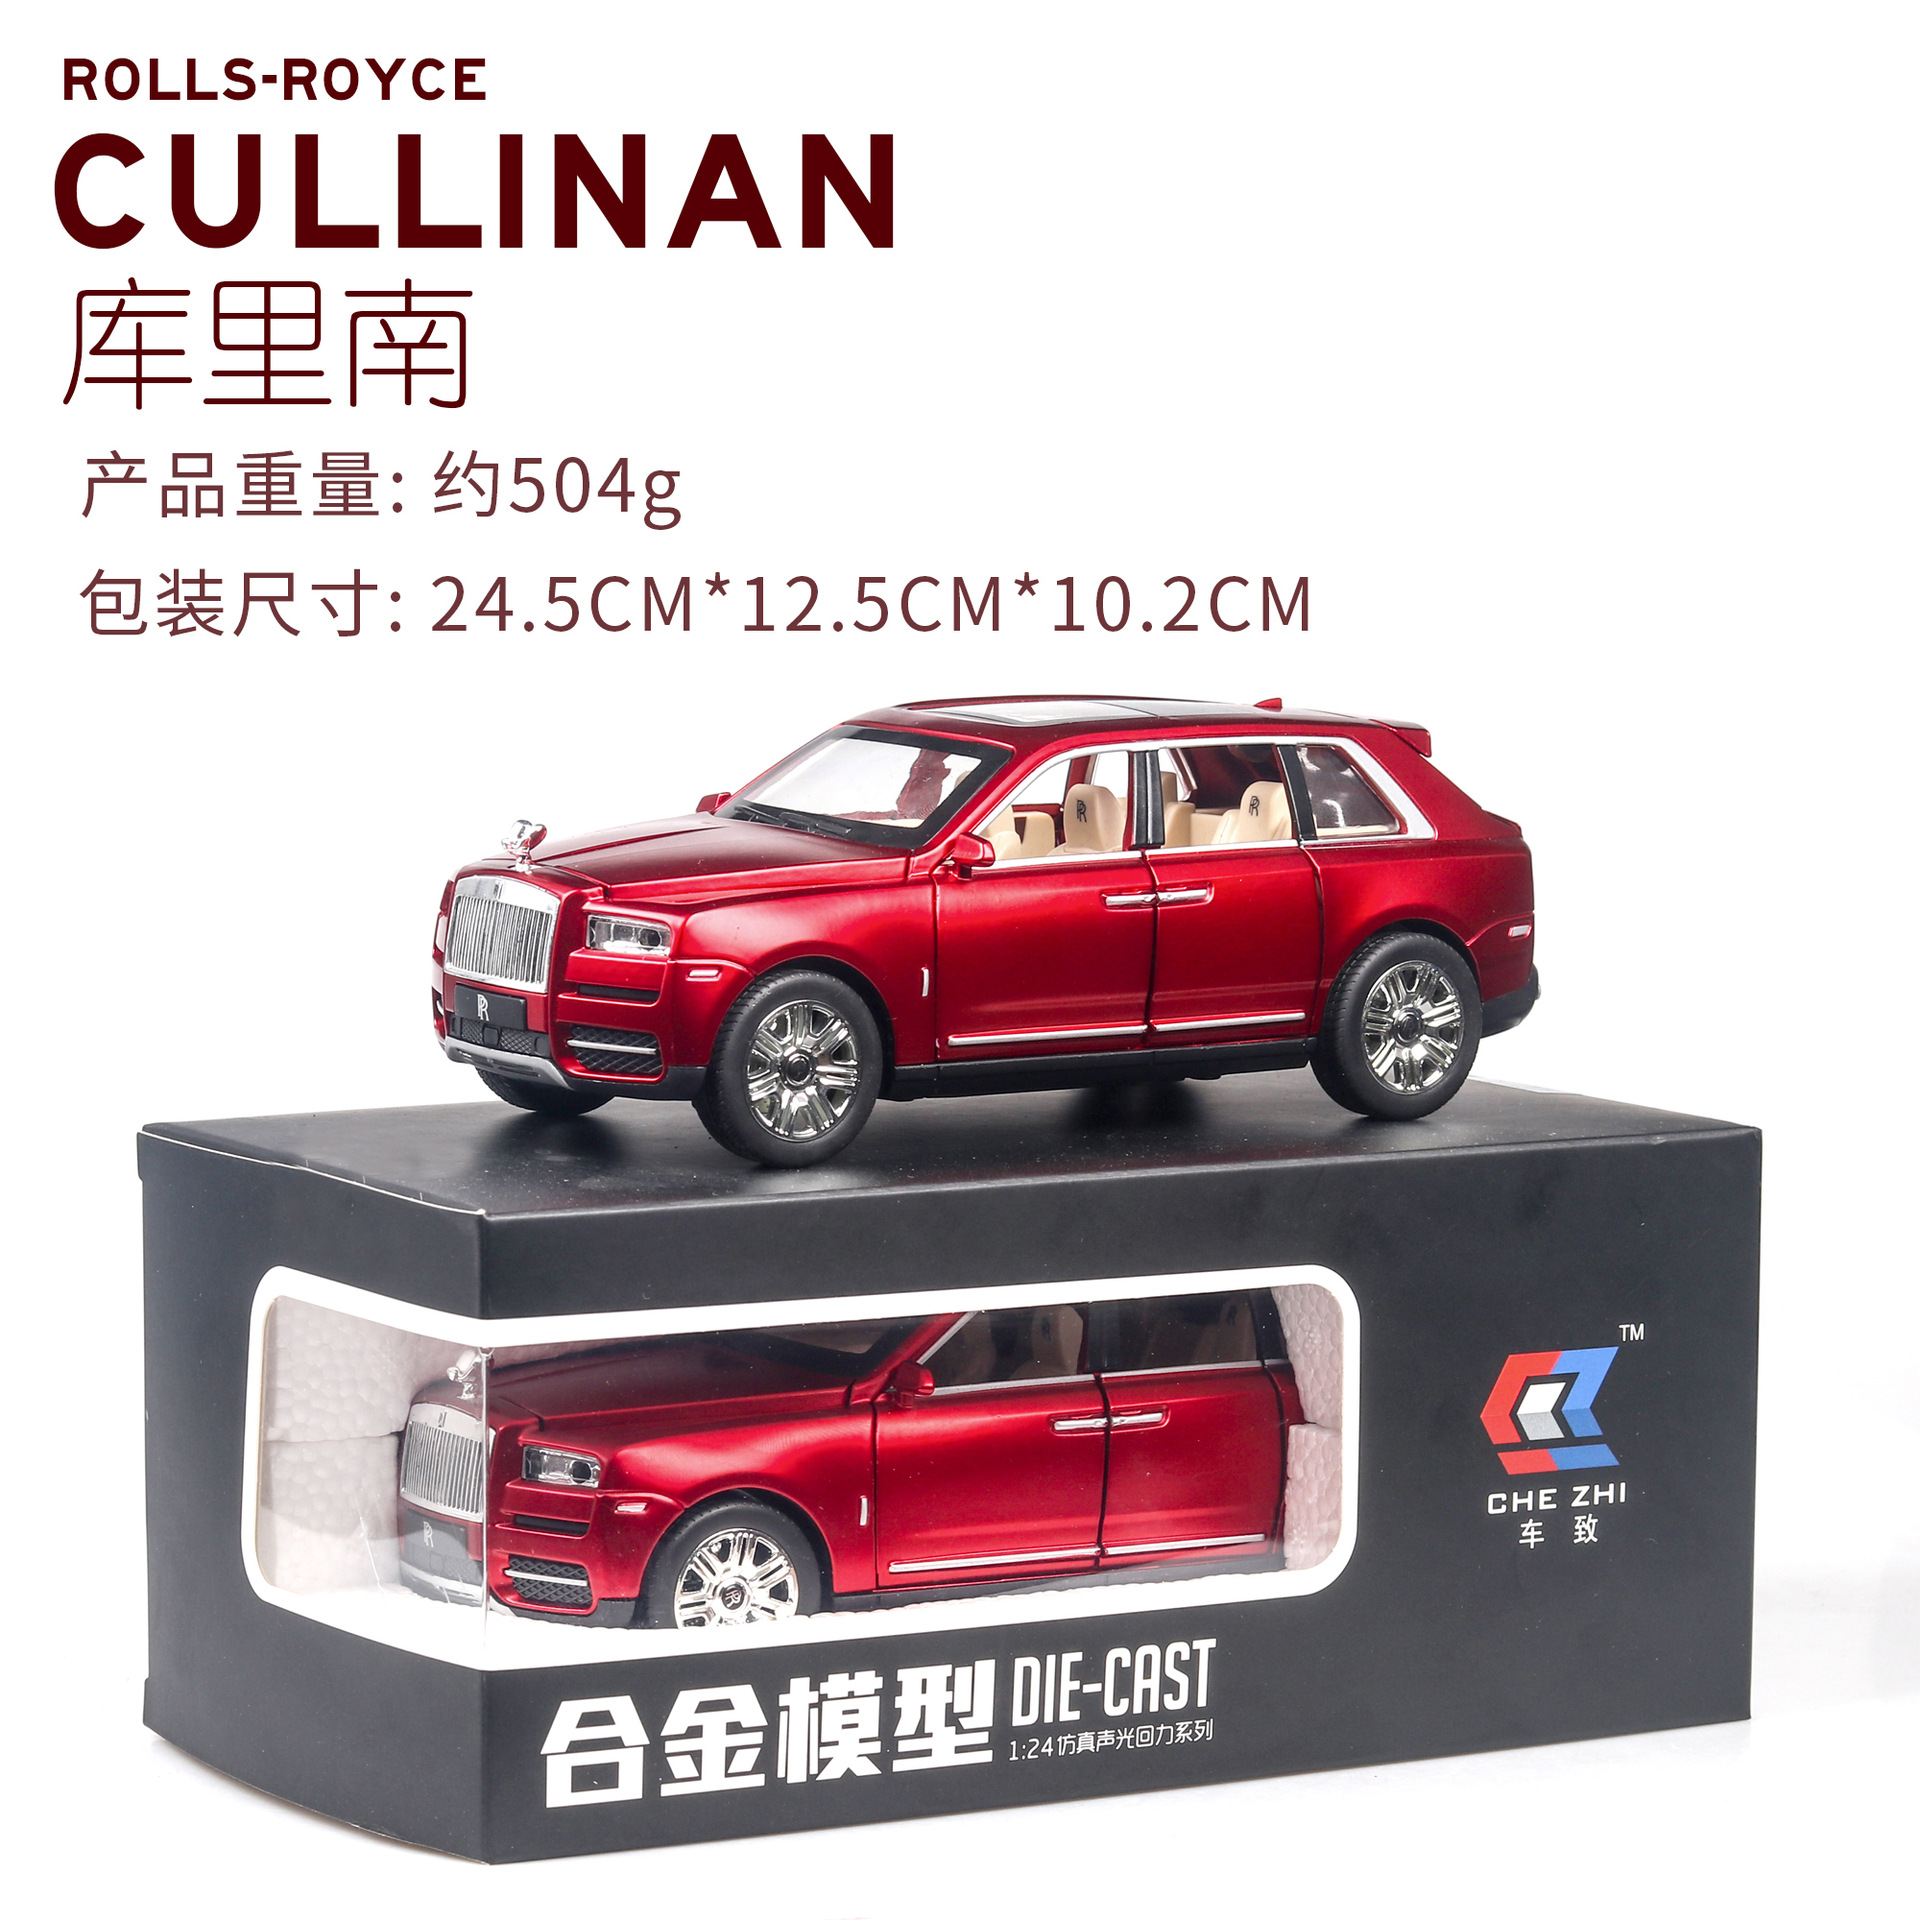 1 24 Diecast Car Model Toy Vehicle Rolls Royces Cullinan SUV Metal Wheels Sound Light Pull